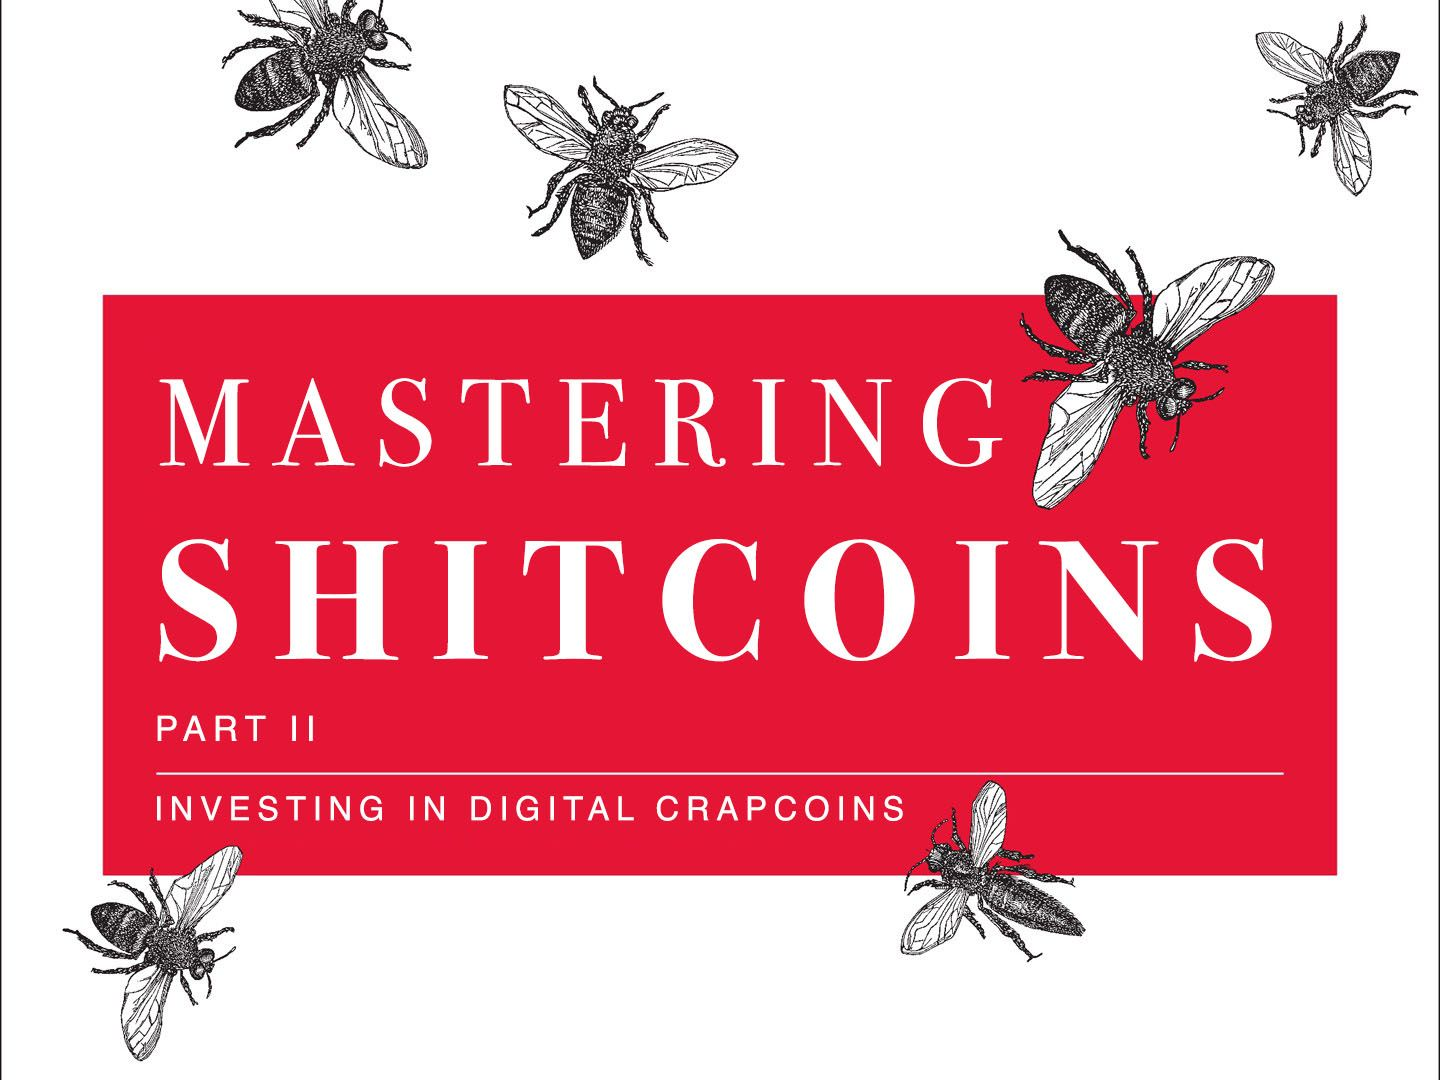 /mastering-shitcoins-ii-the-poor-mans-guide-to-getting-rich-nvo33j3 feature image